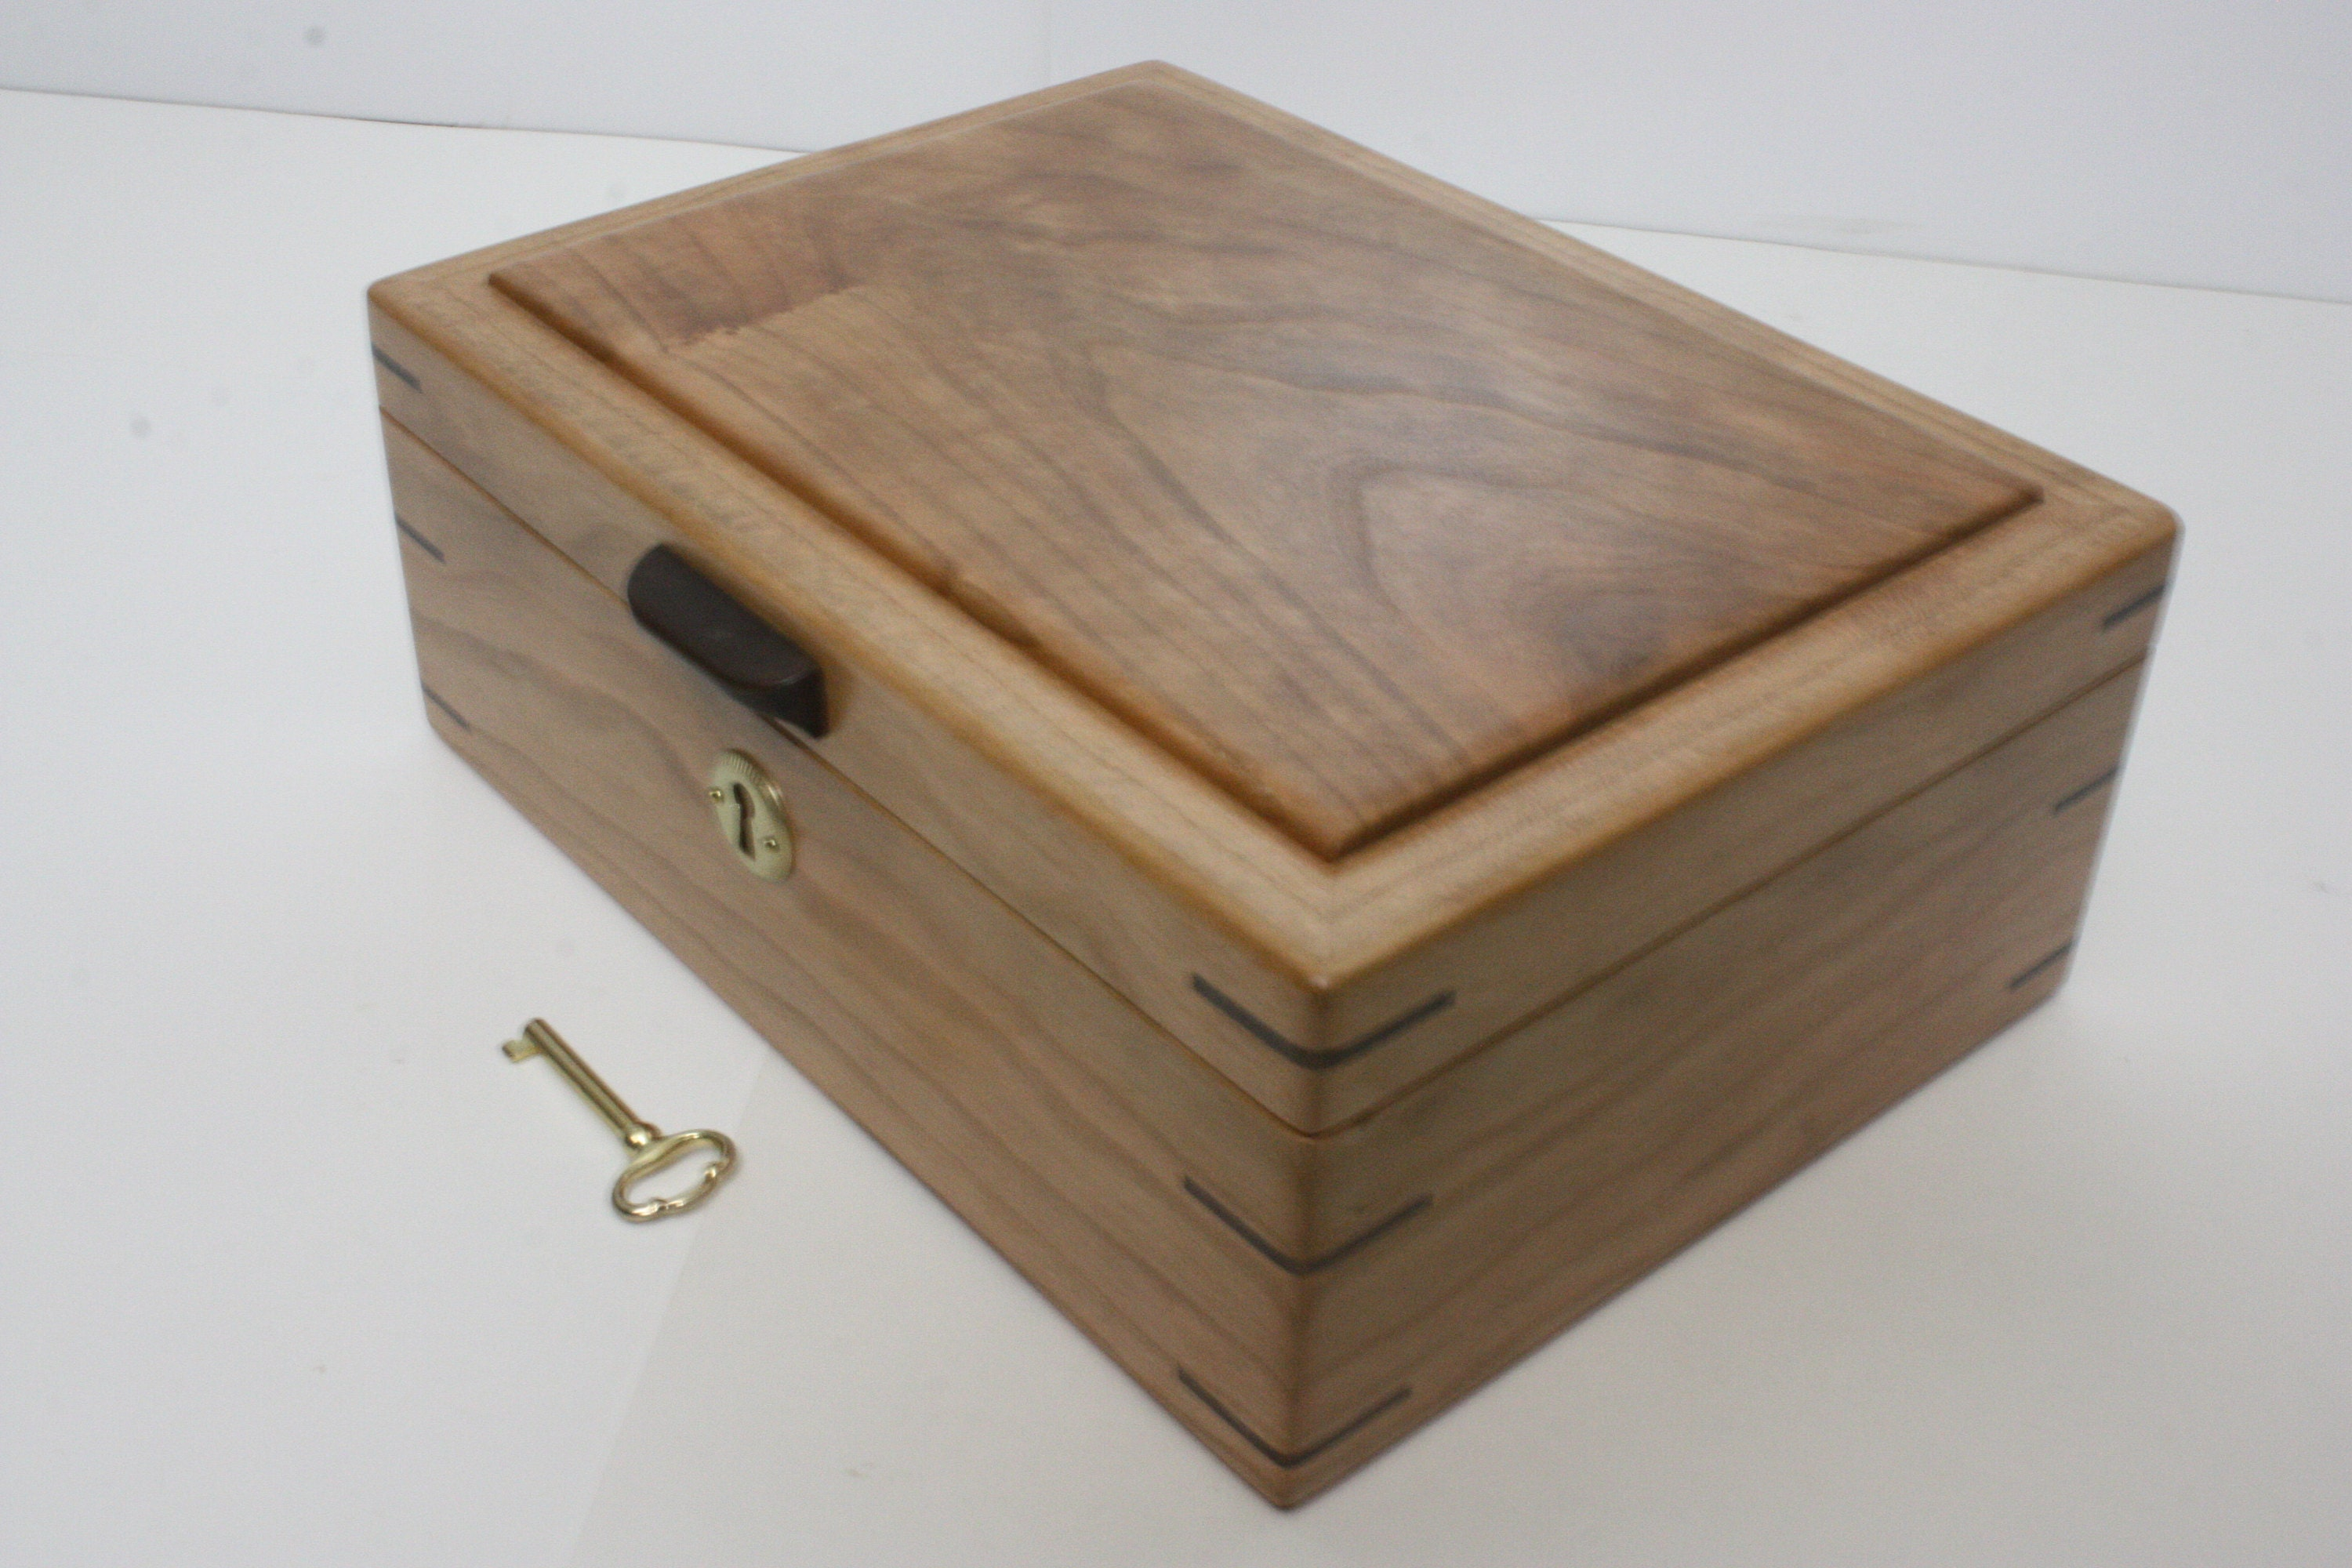 Handmade Cherry Wood Locking Box